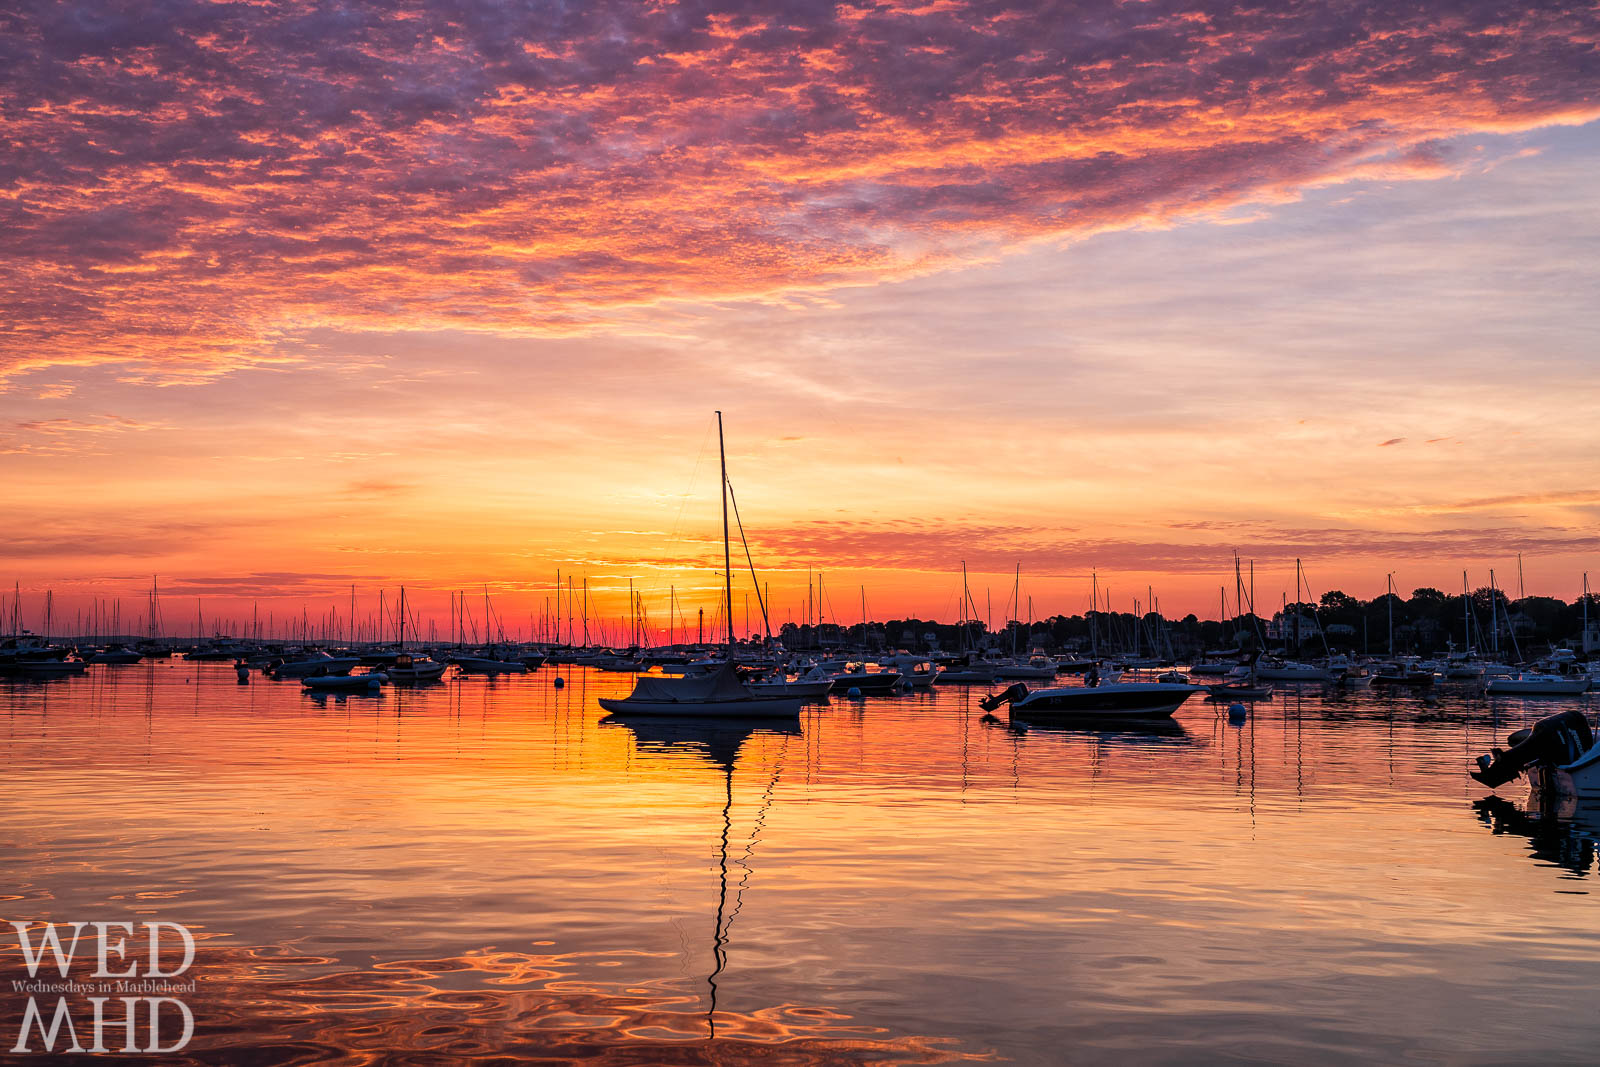 In late June a sunrise bathed Marblehead harbor in a range of colors and seemed to last forever